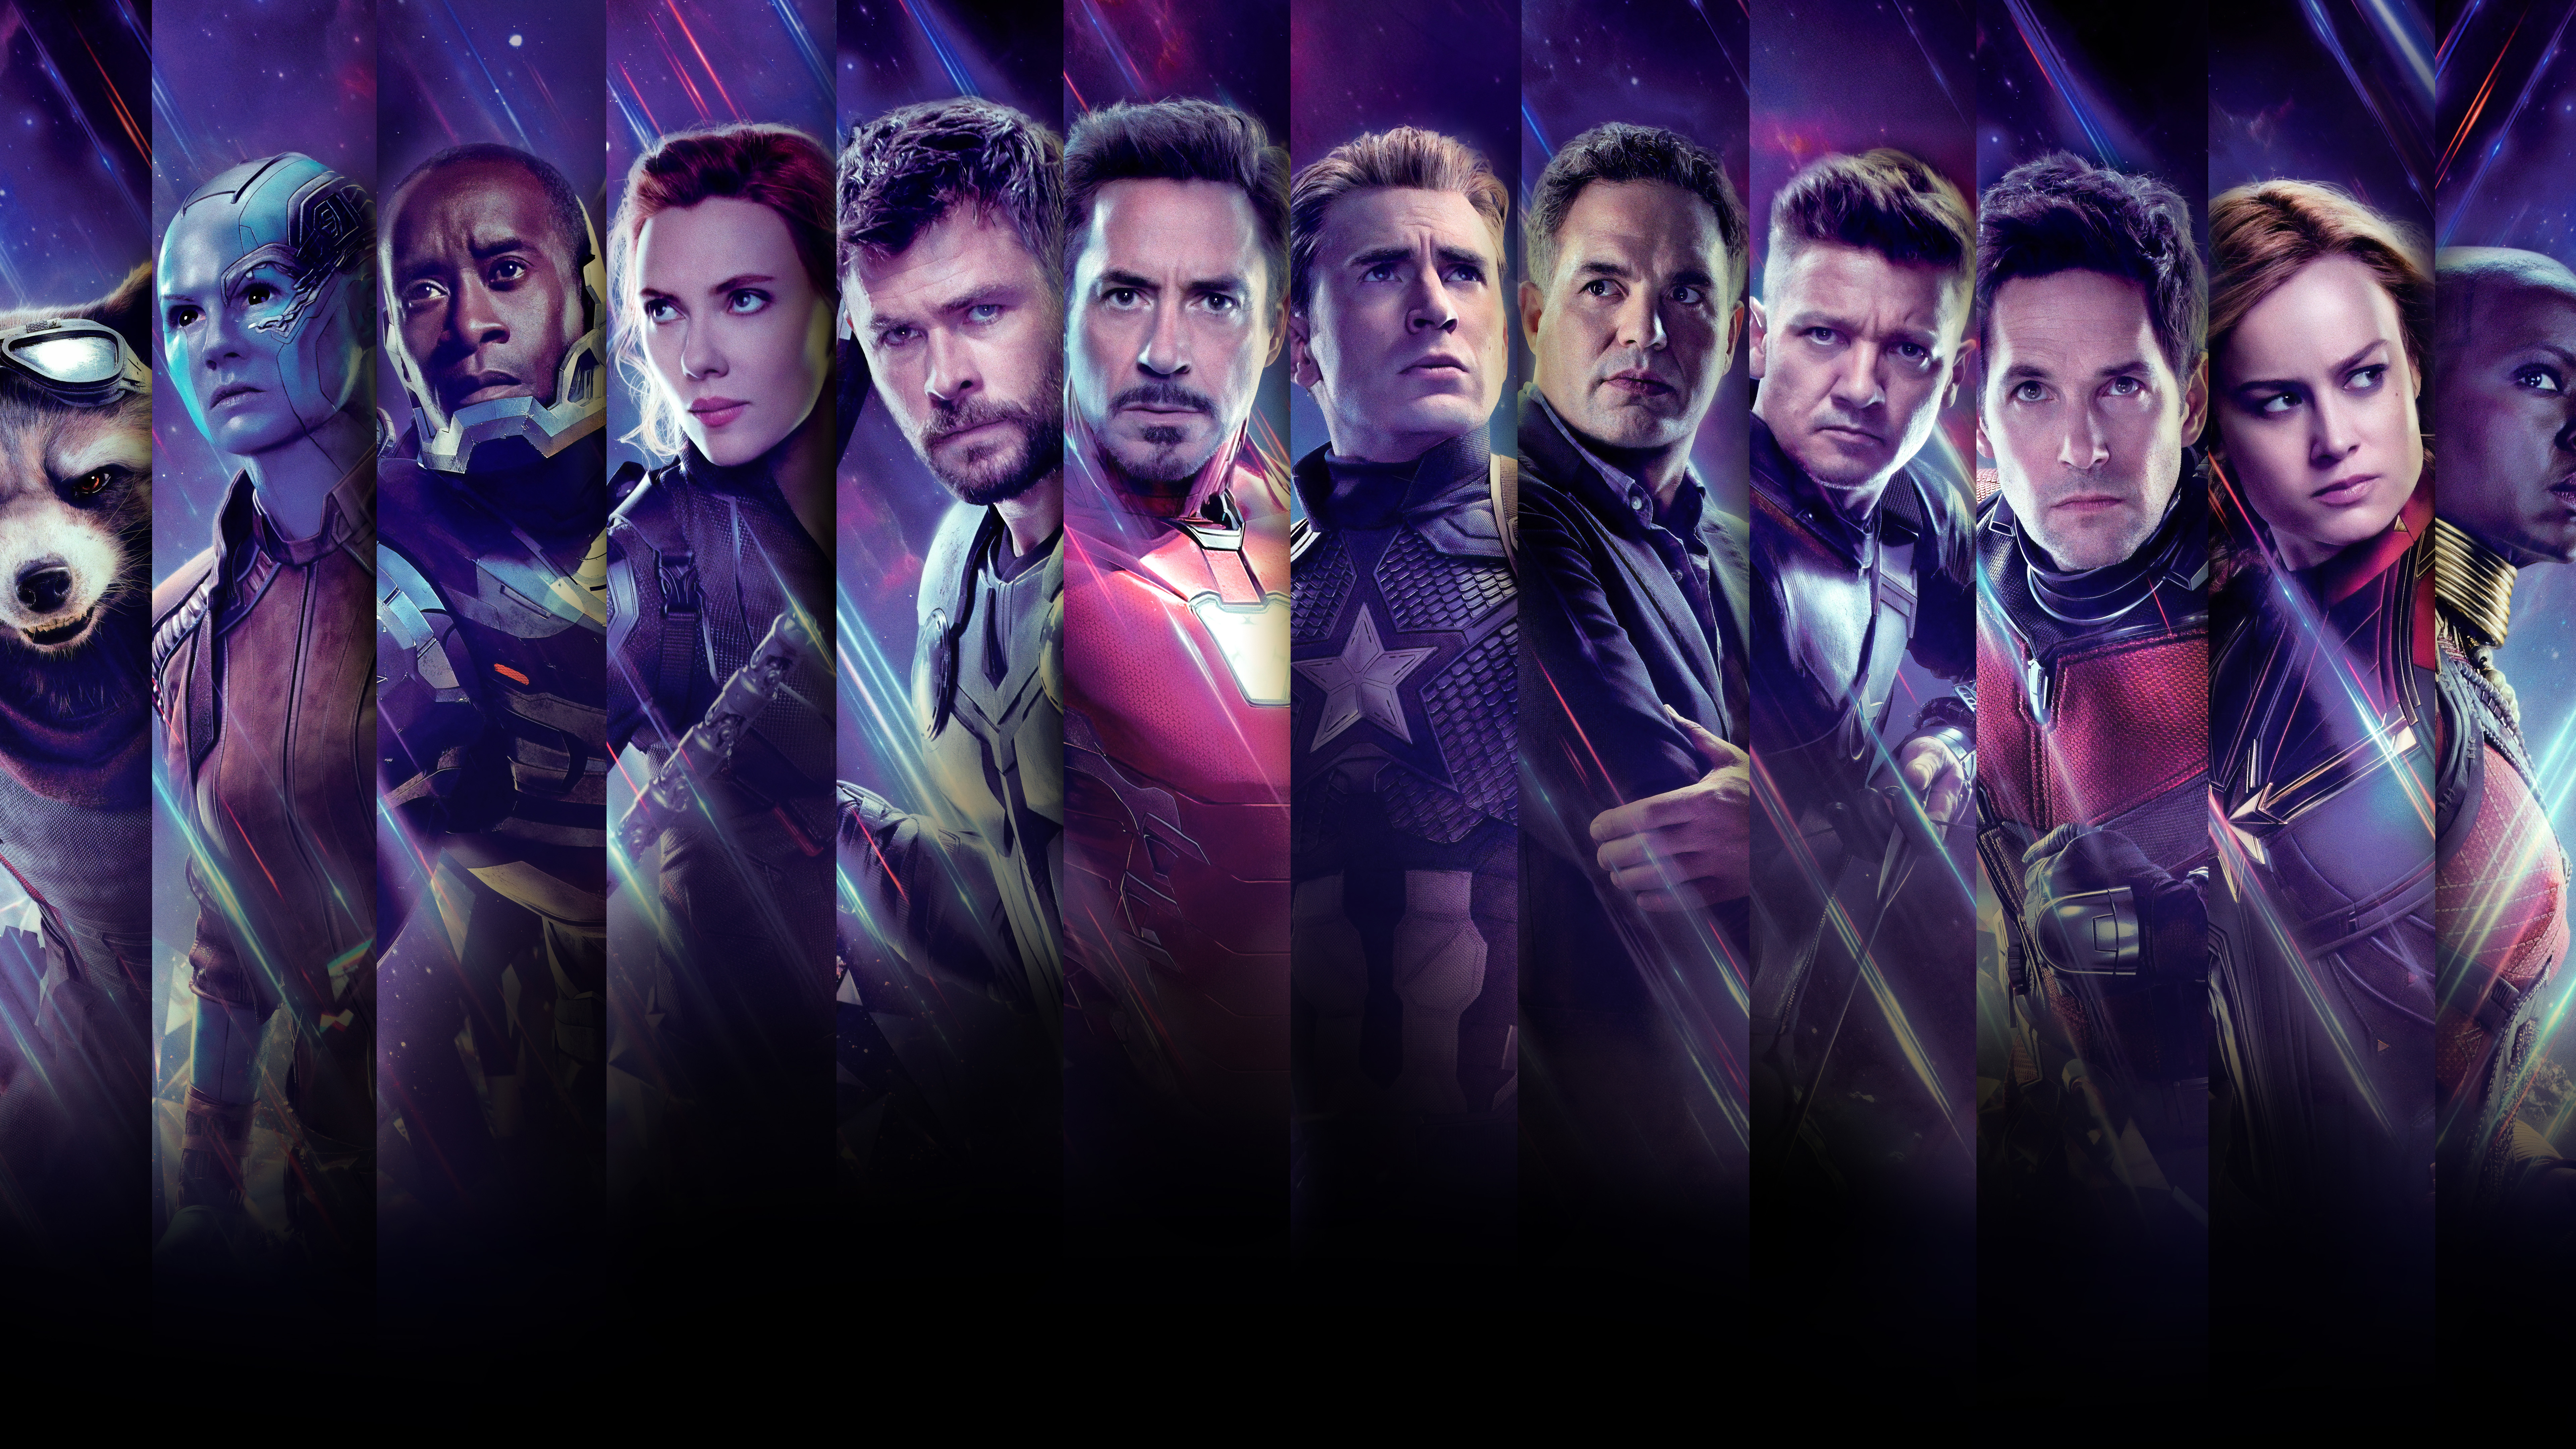 Avengers Endgame 4k Wallpaper Posted By Zoey Anderson